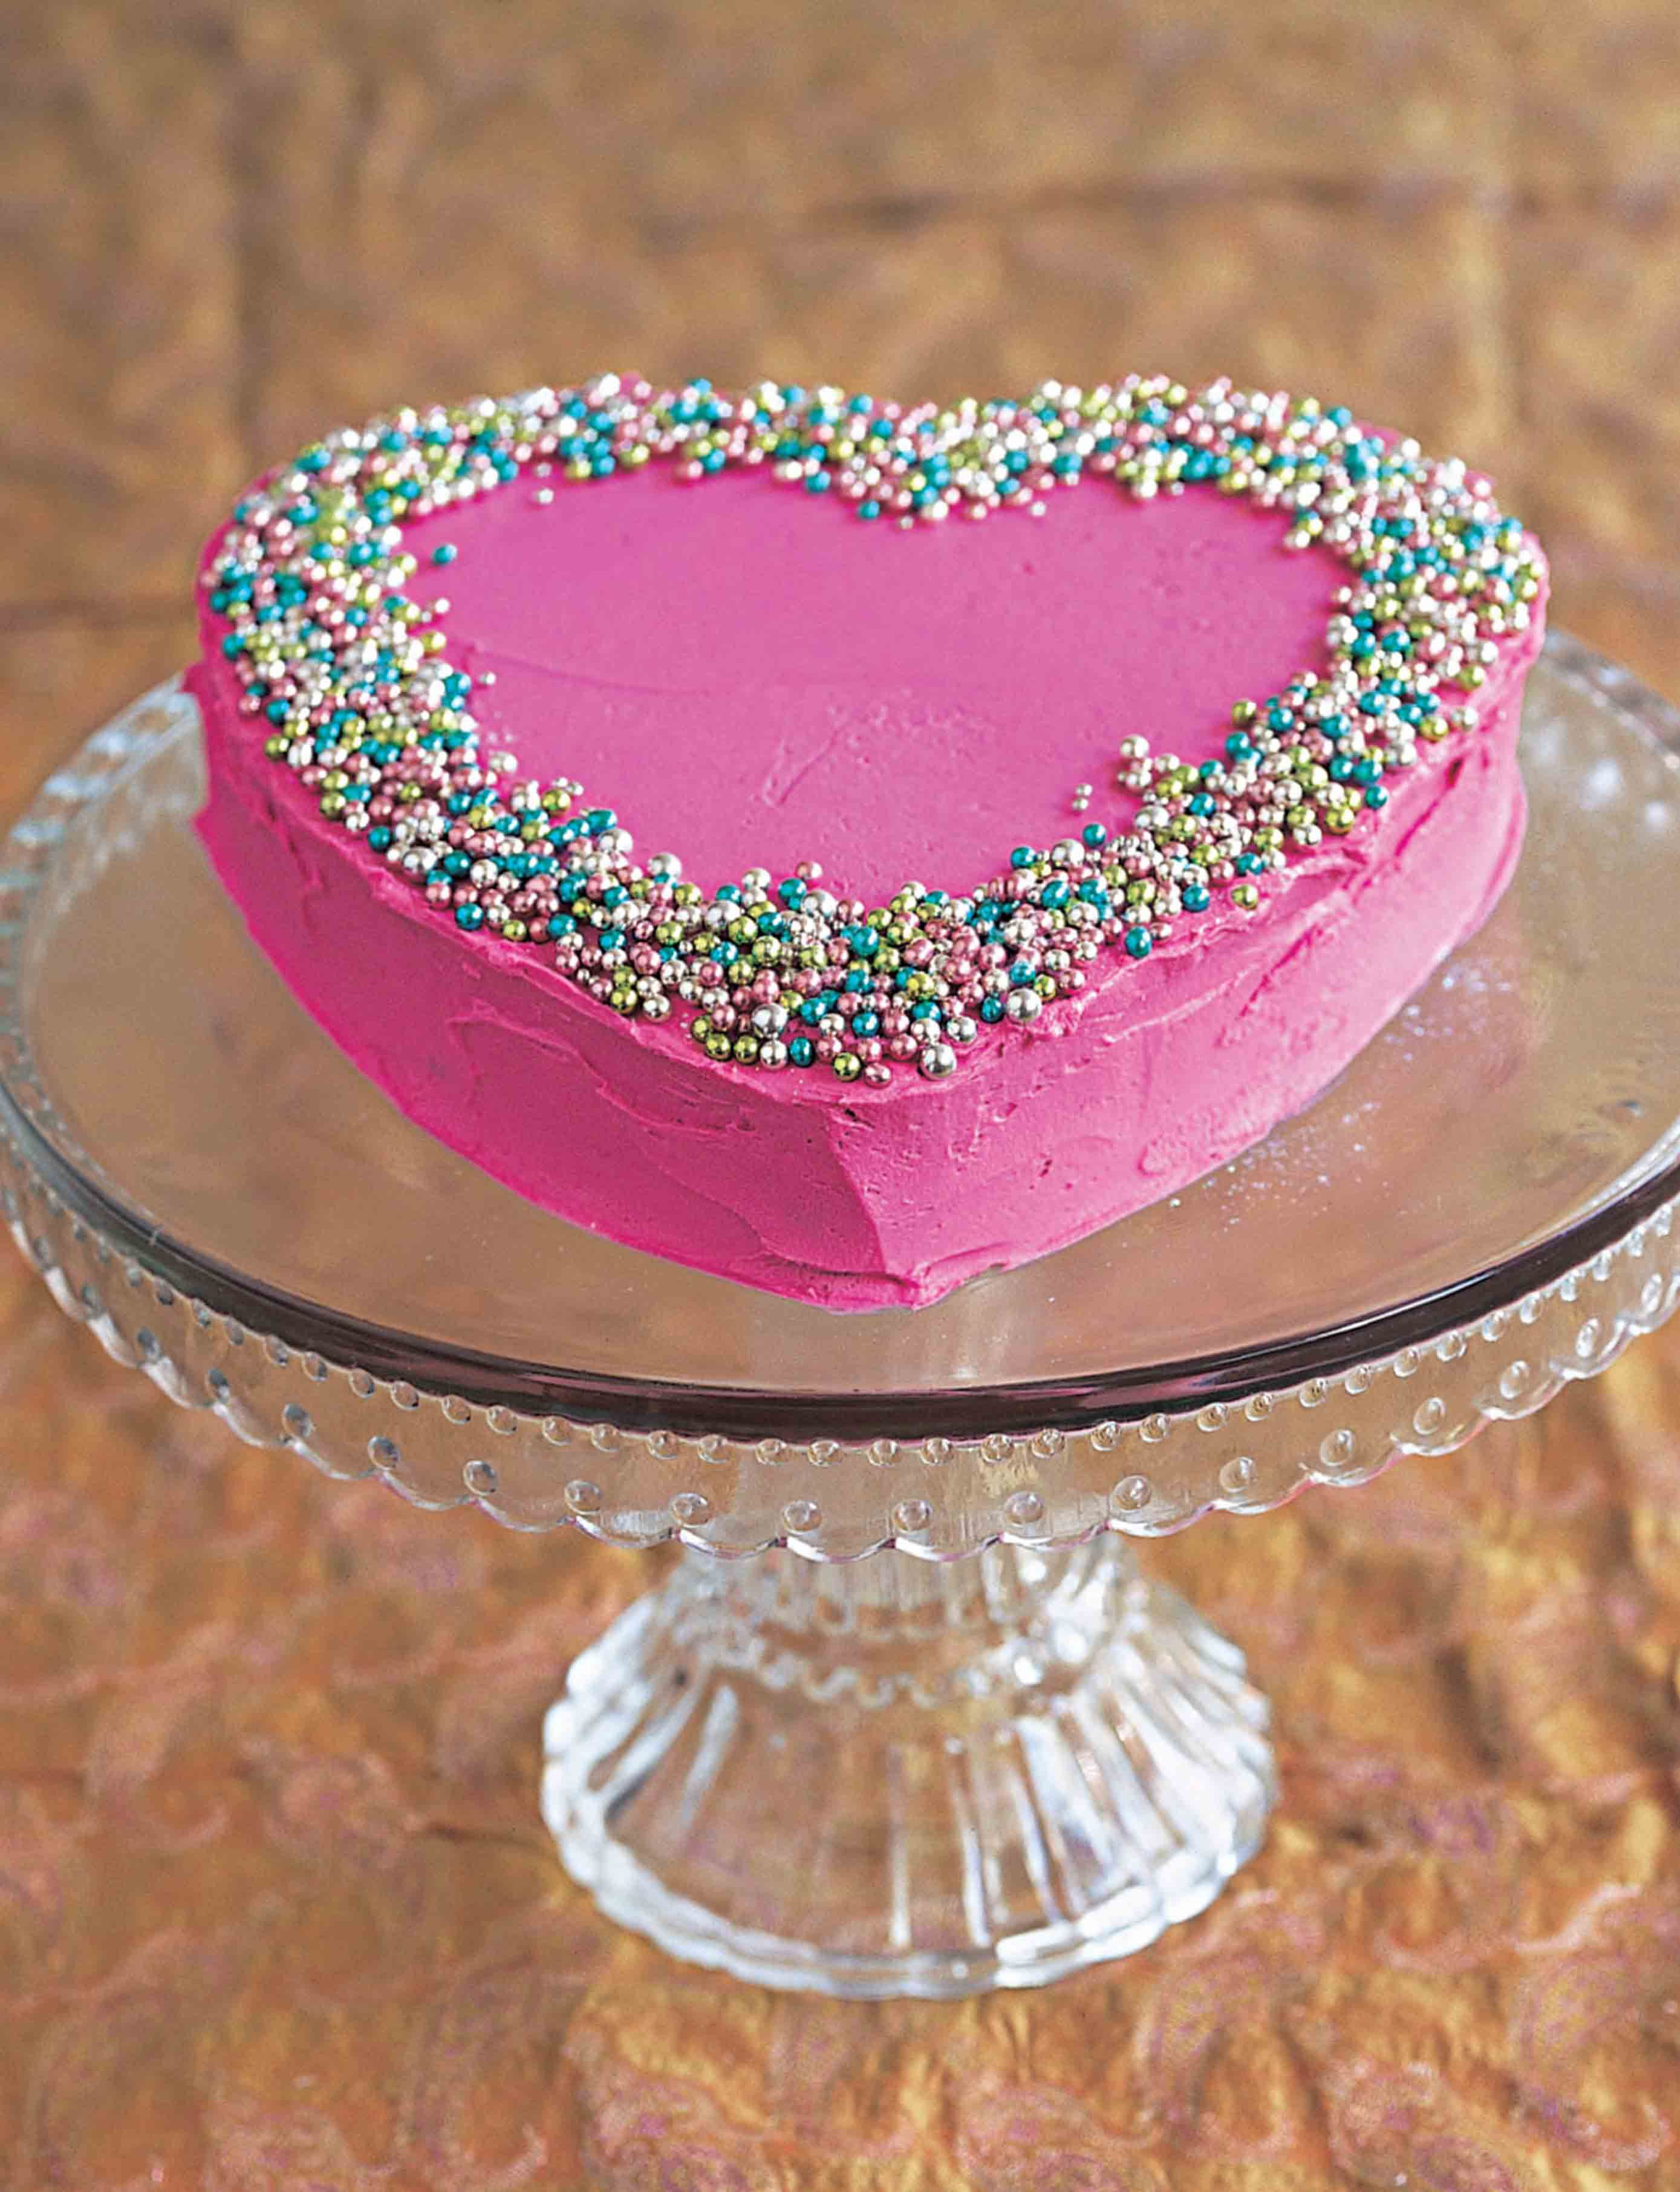 Pink iced heart